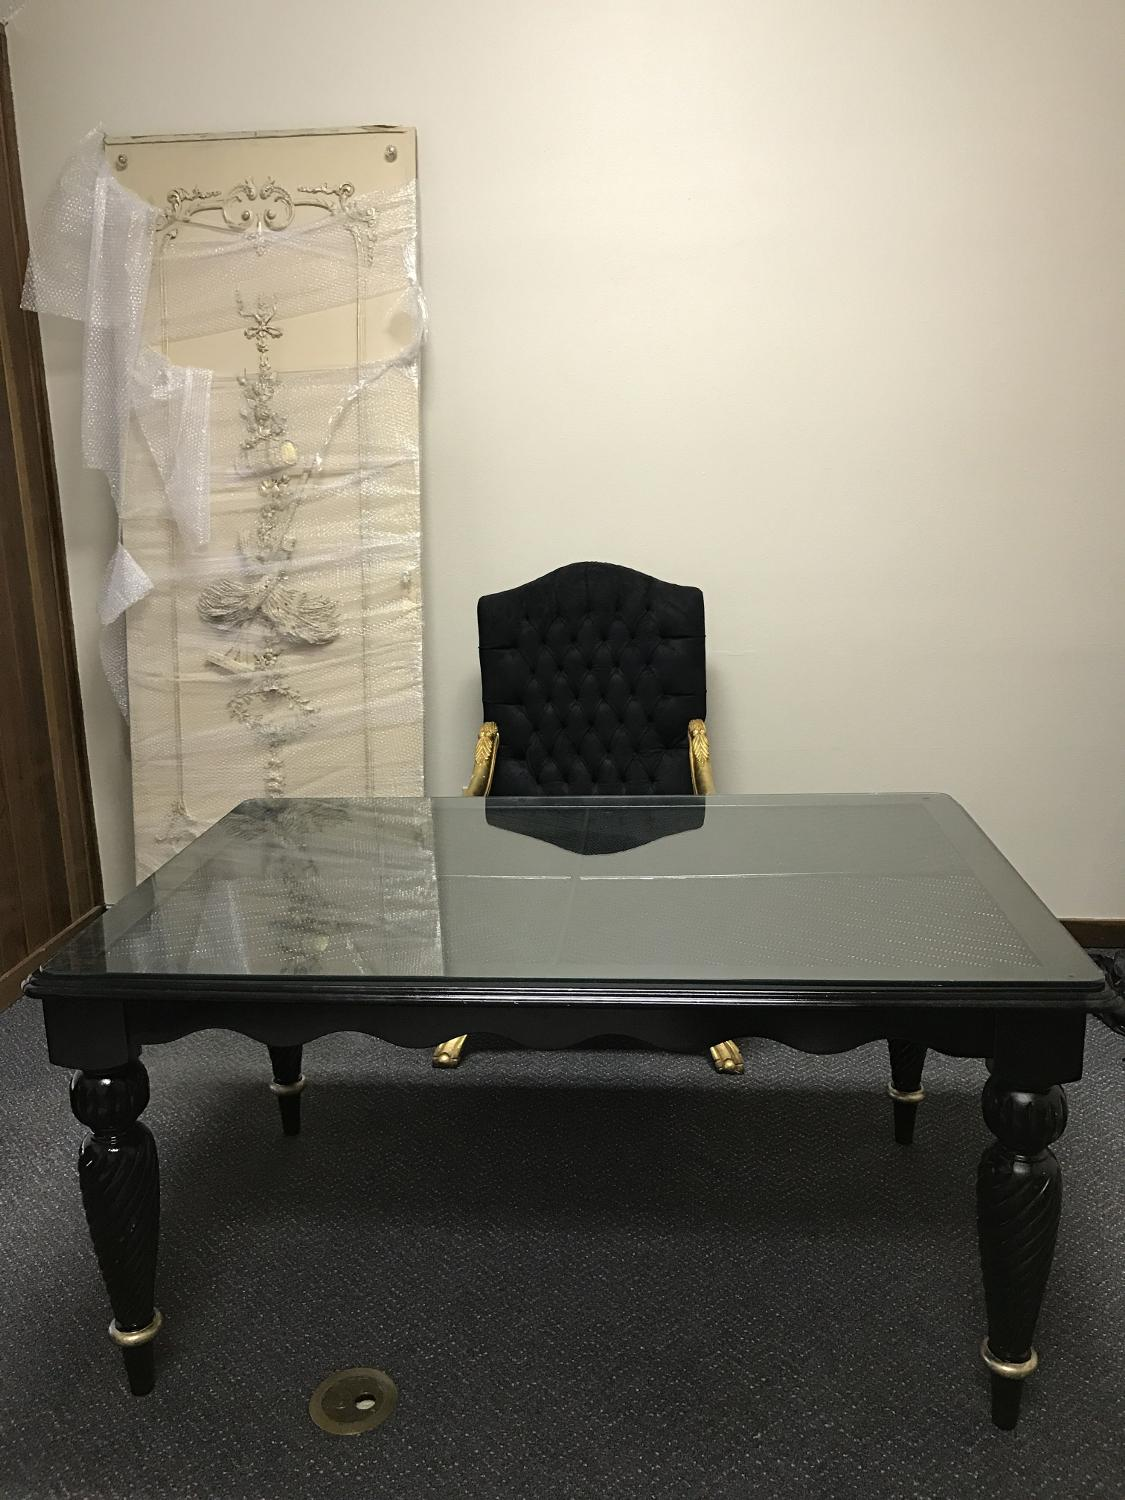 Find More Black Table Desk With Gold Trim For Sale At